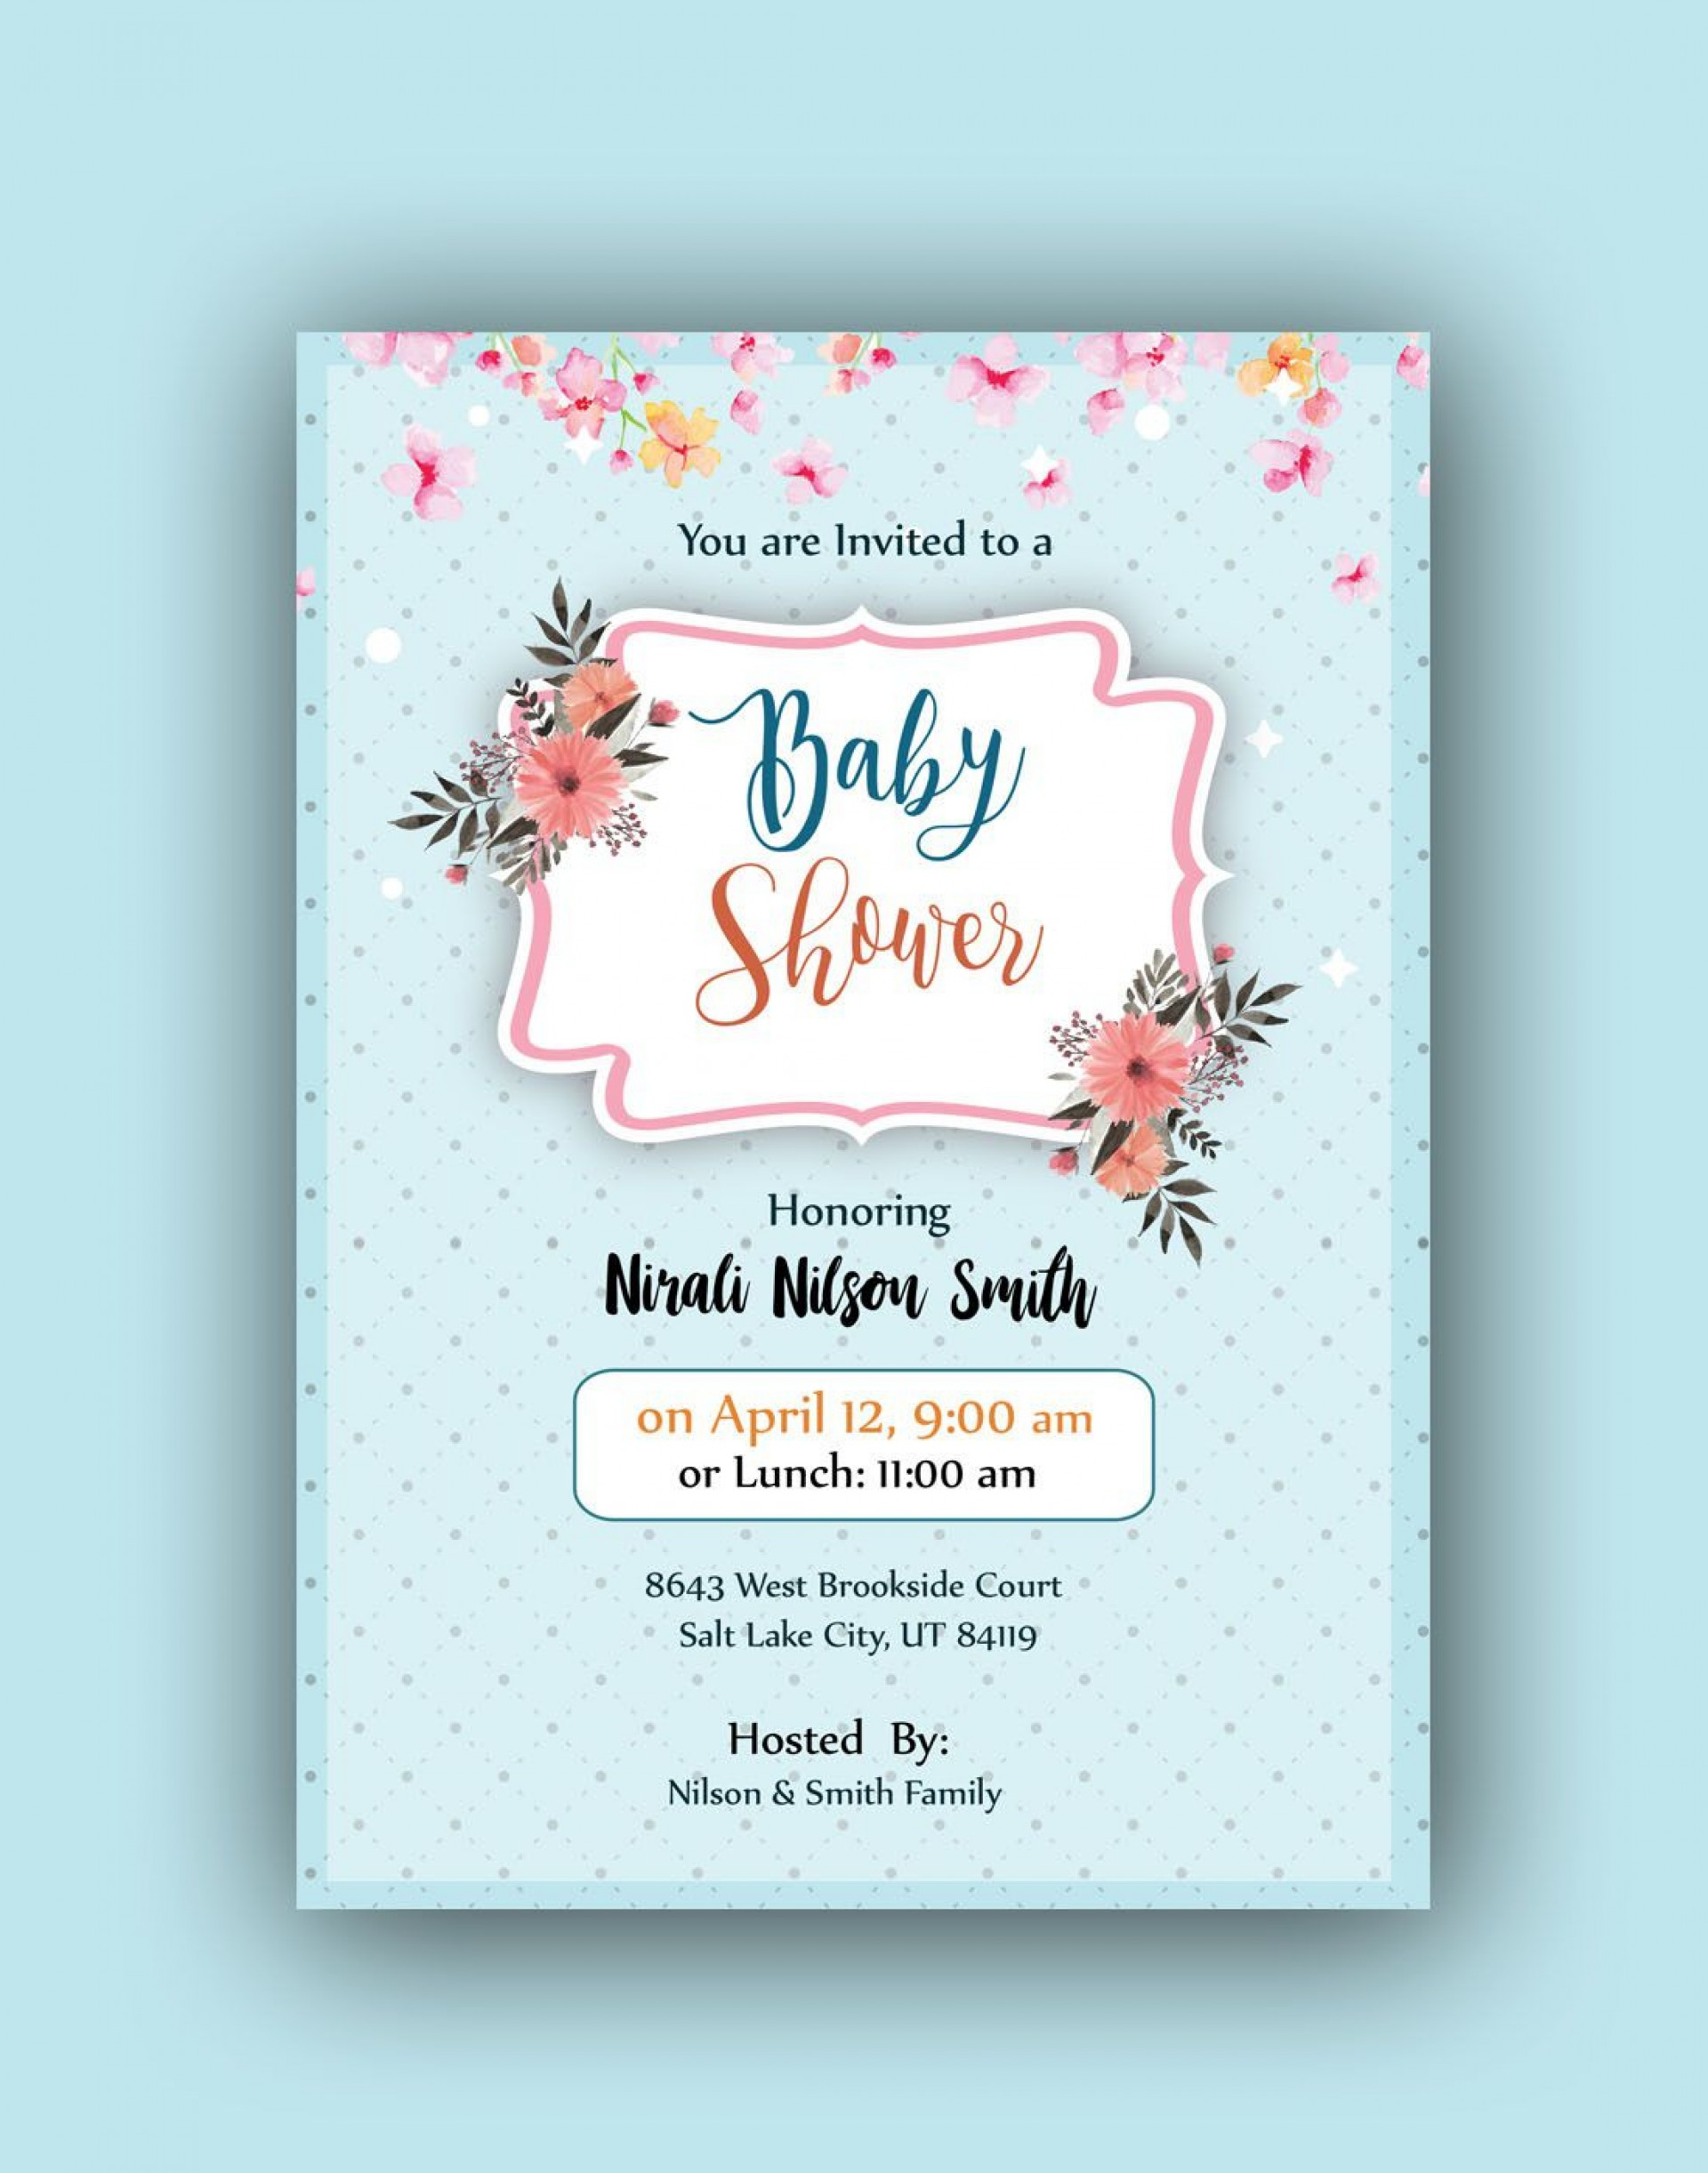 007 Stirring Baby Shower Card Template Psd Concept 1920